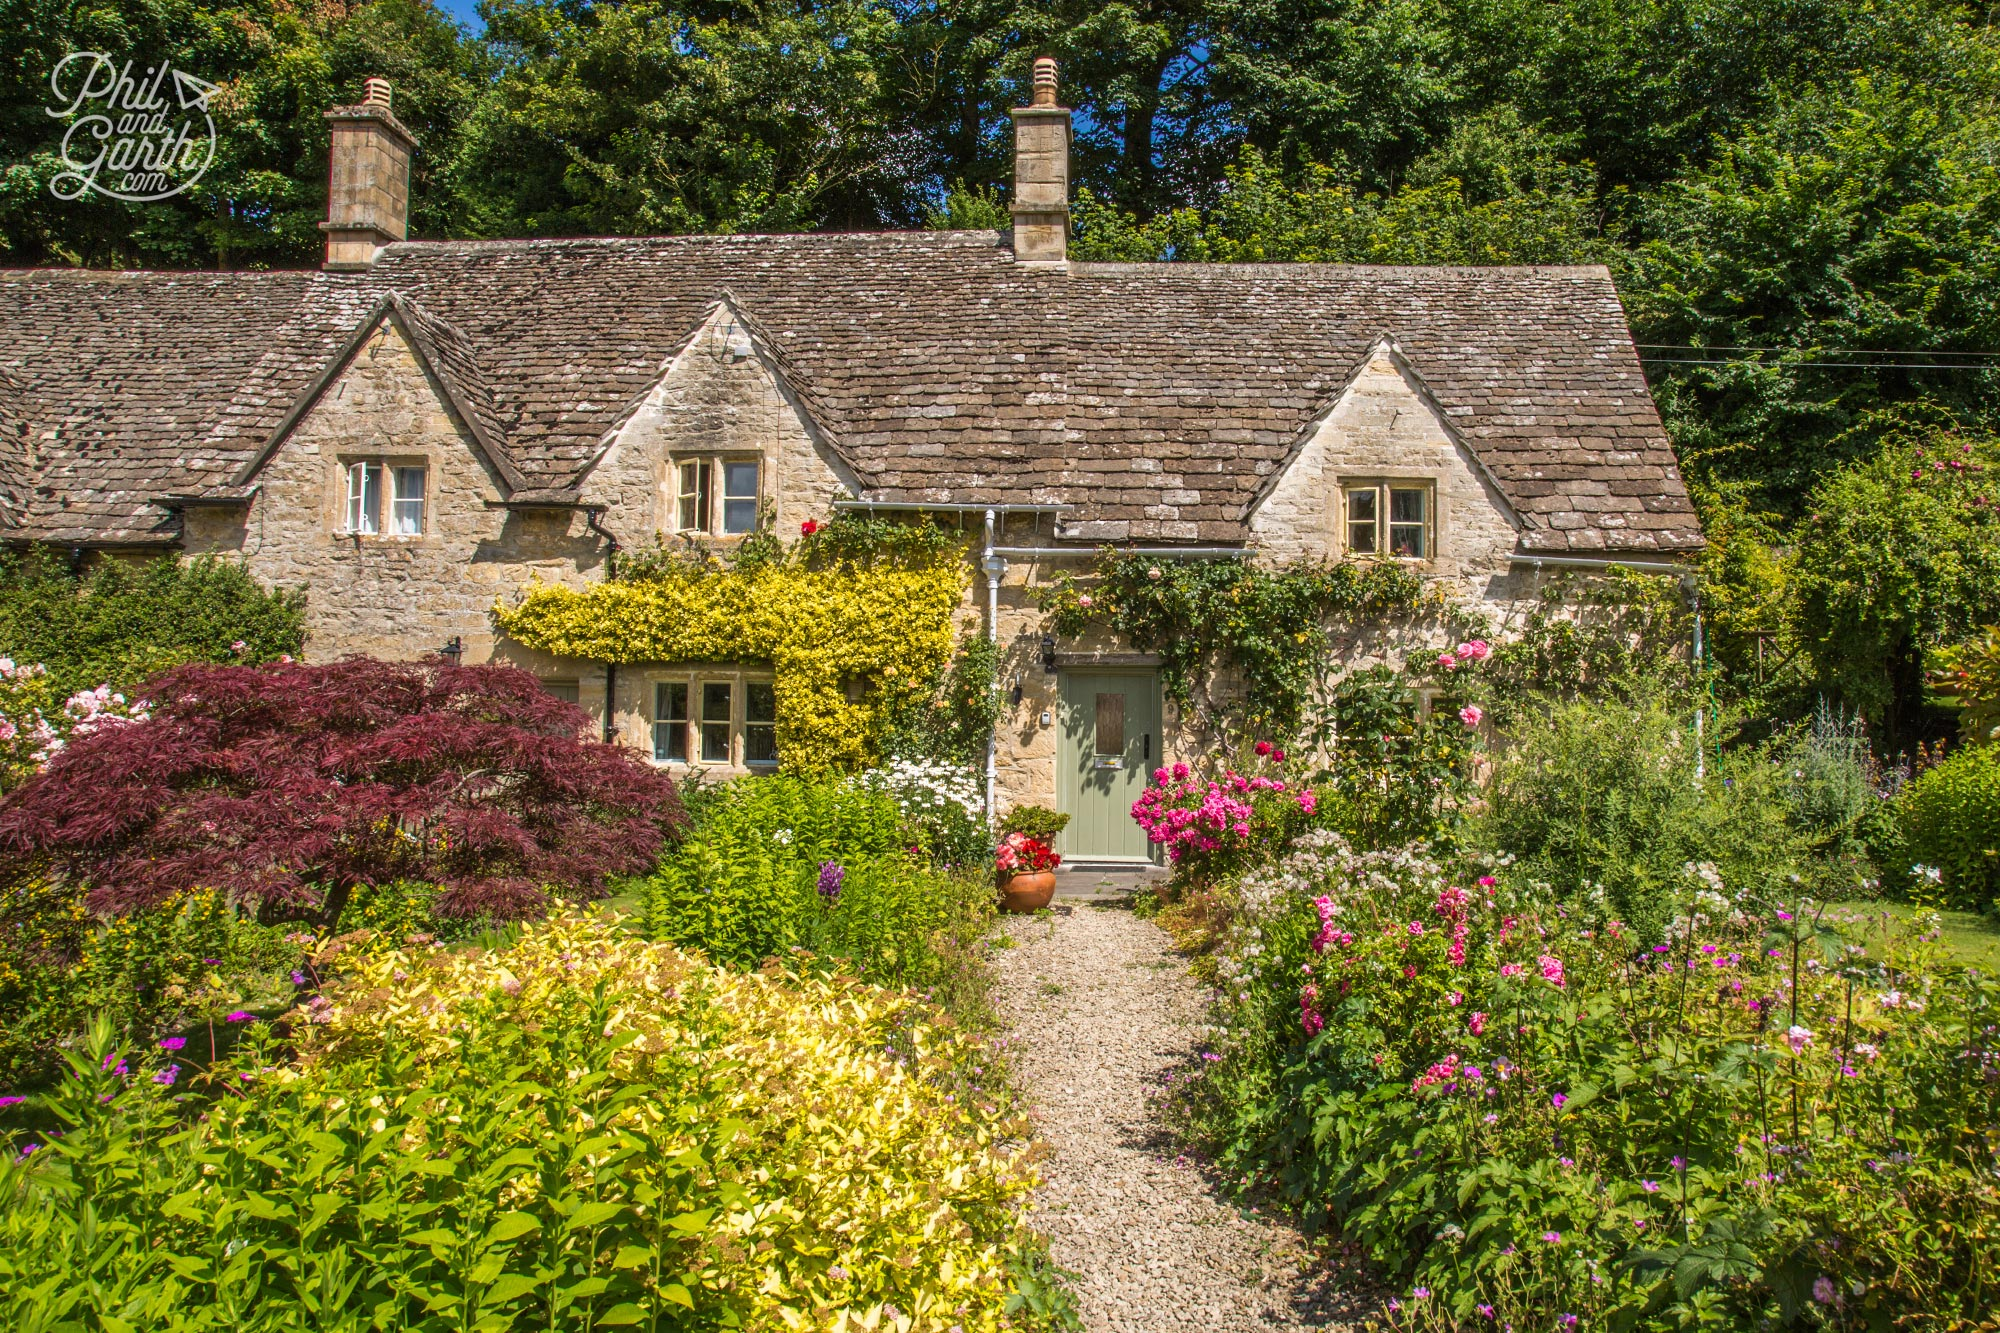 Well manicured English country cottage gardens at Bibury